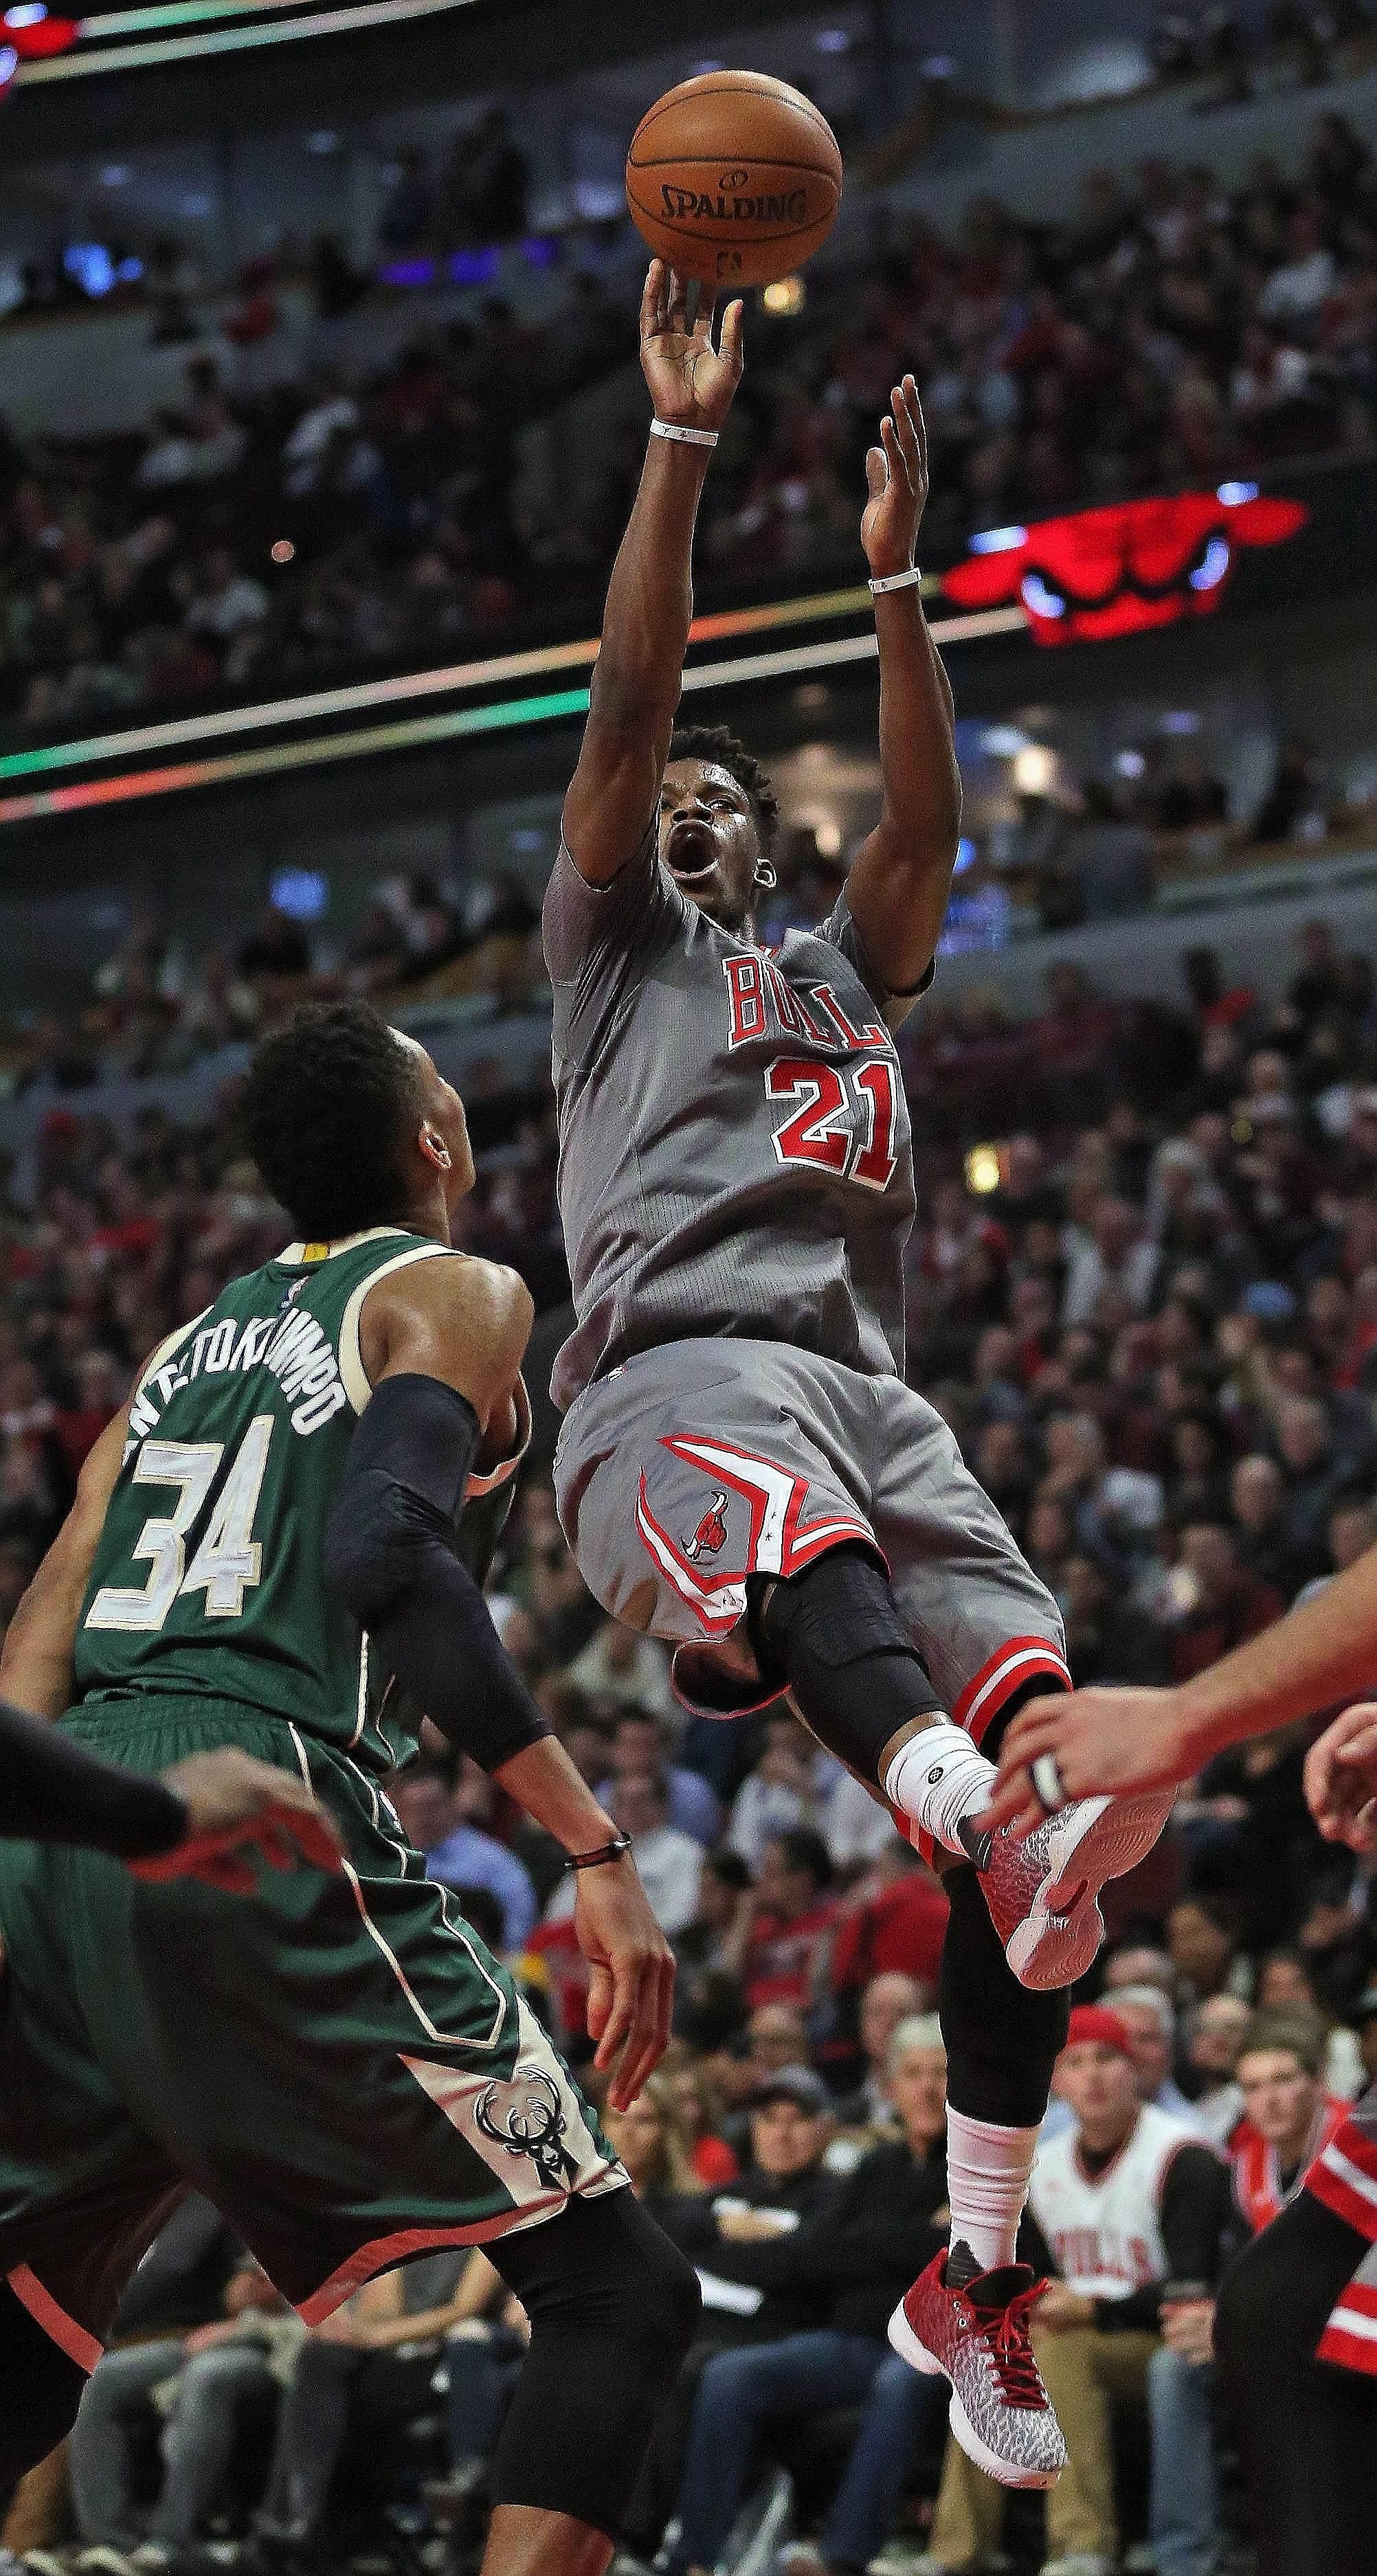 Continuing his recent hot streak, the Chicago Bulls guard Jimmy Butler puts up a shot over the Milwaukee Bucks' Giannis Antetokounmpo en route to 32 points in the Bulls' win. Butler had scored 42 points against the Toronto Raptors in his last game.